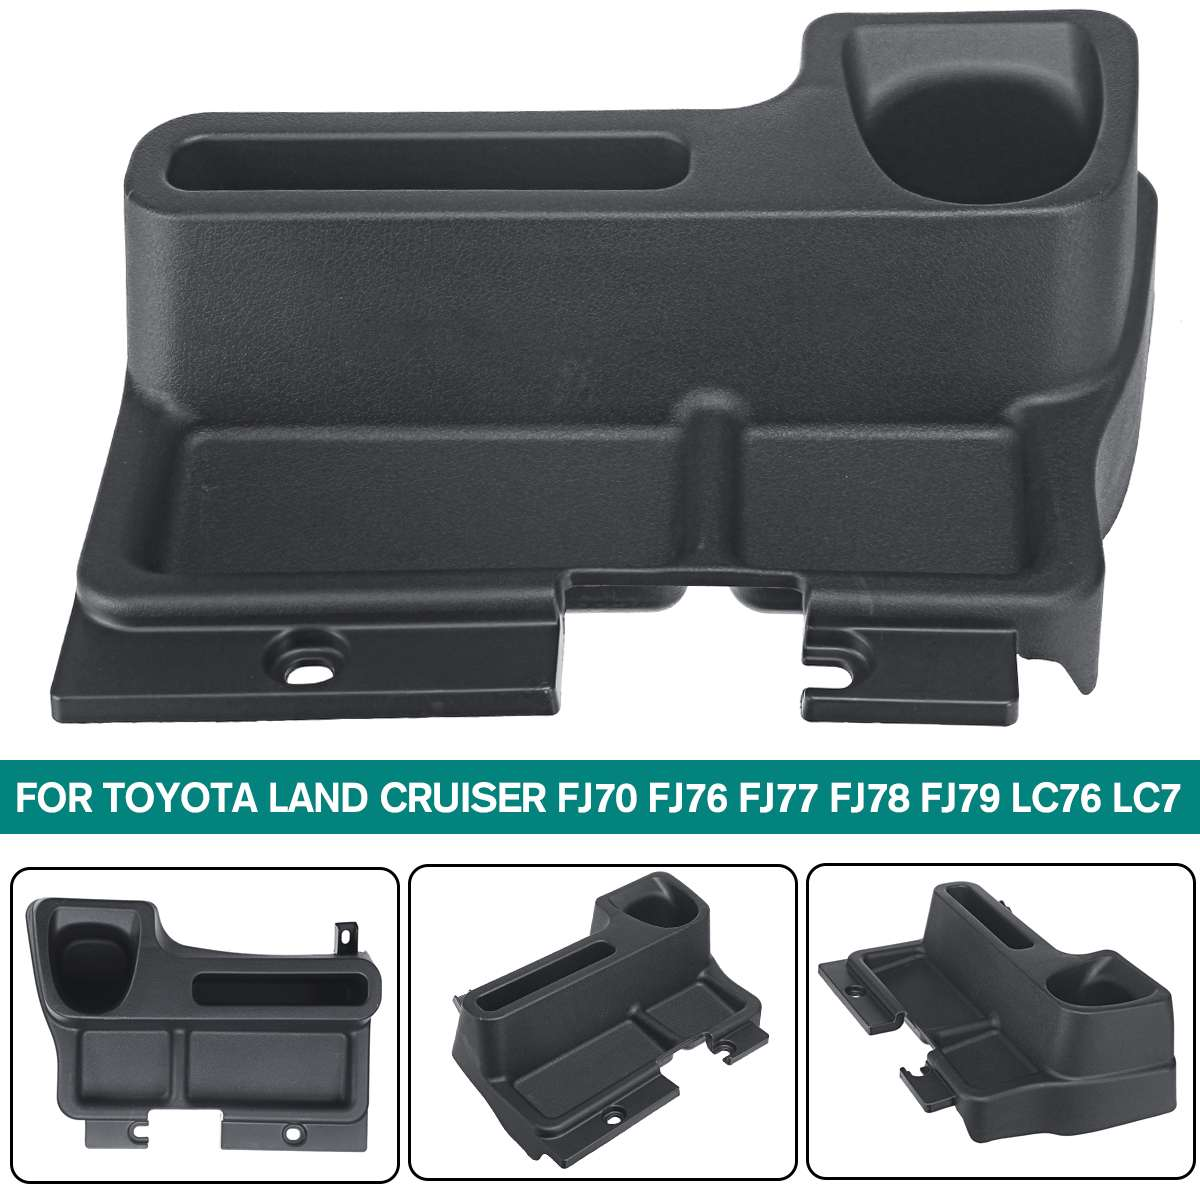 1Set Black Plastic Car Center Console Armrest Storage Box Tray For <font><b>Toyota</b></font> Land Cruiser FJ70 FJ76 FJ77 FJ78 FJ79 <font><b>LC76</b></font> LC77 image